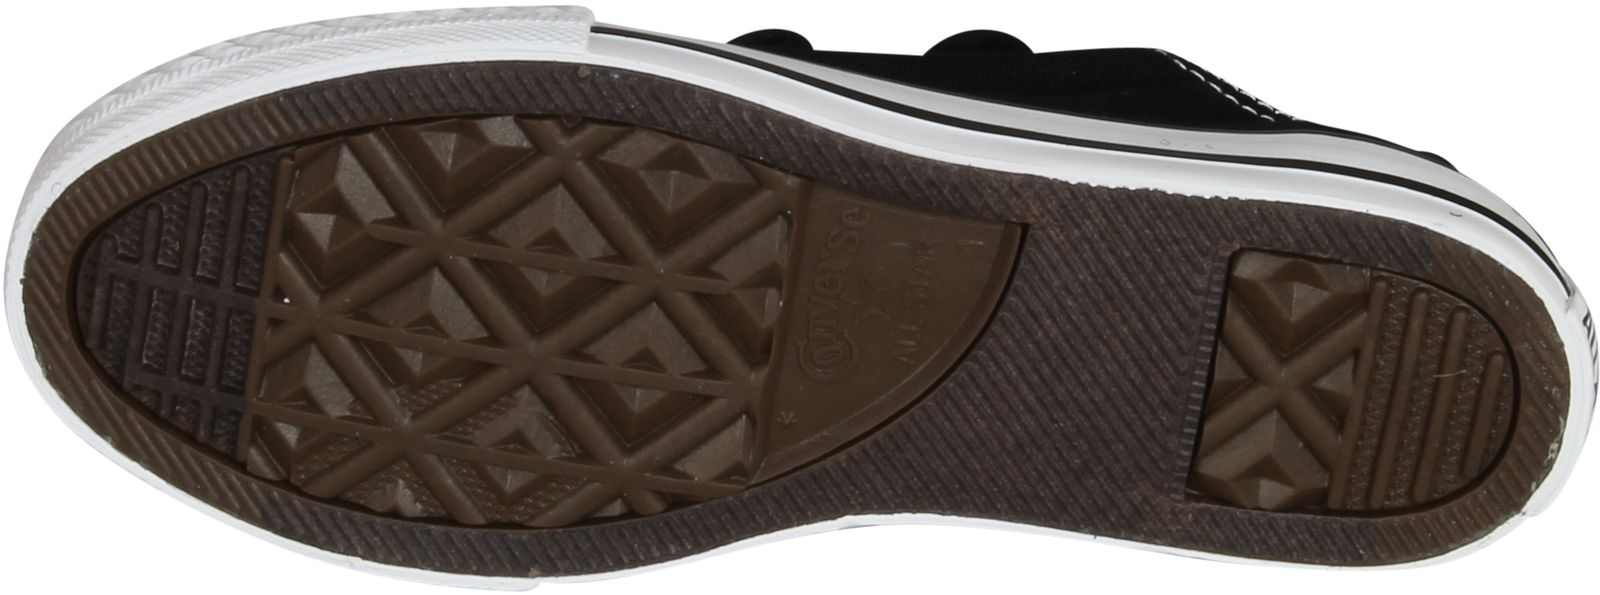 Converse Unisex 2v ox fashion-sneakers